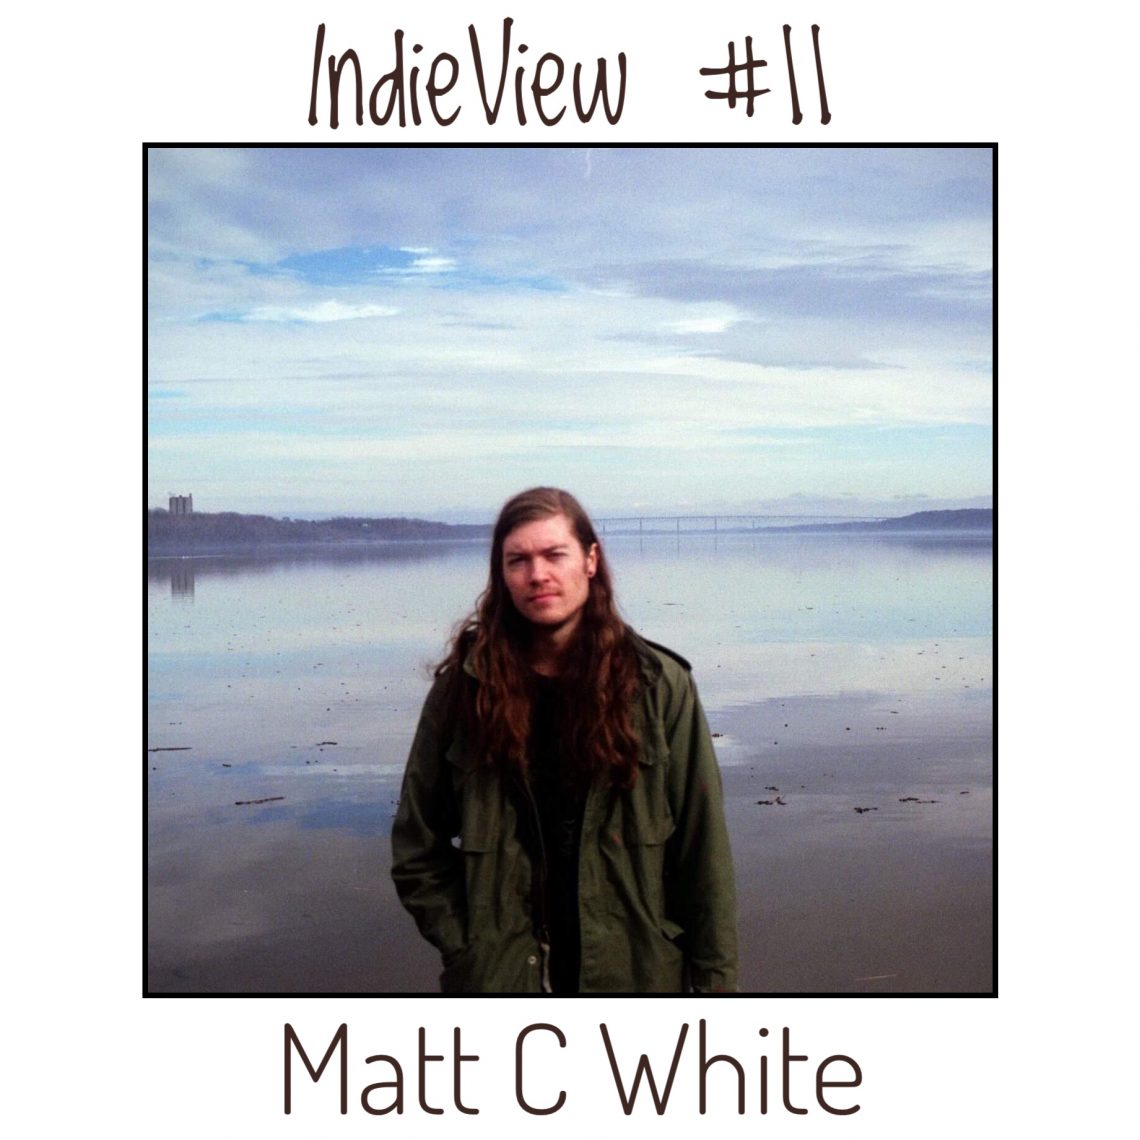 Matt C White (realizer) - IndieView #11 (Interview) Spotify and Streamings